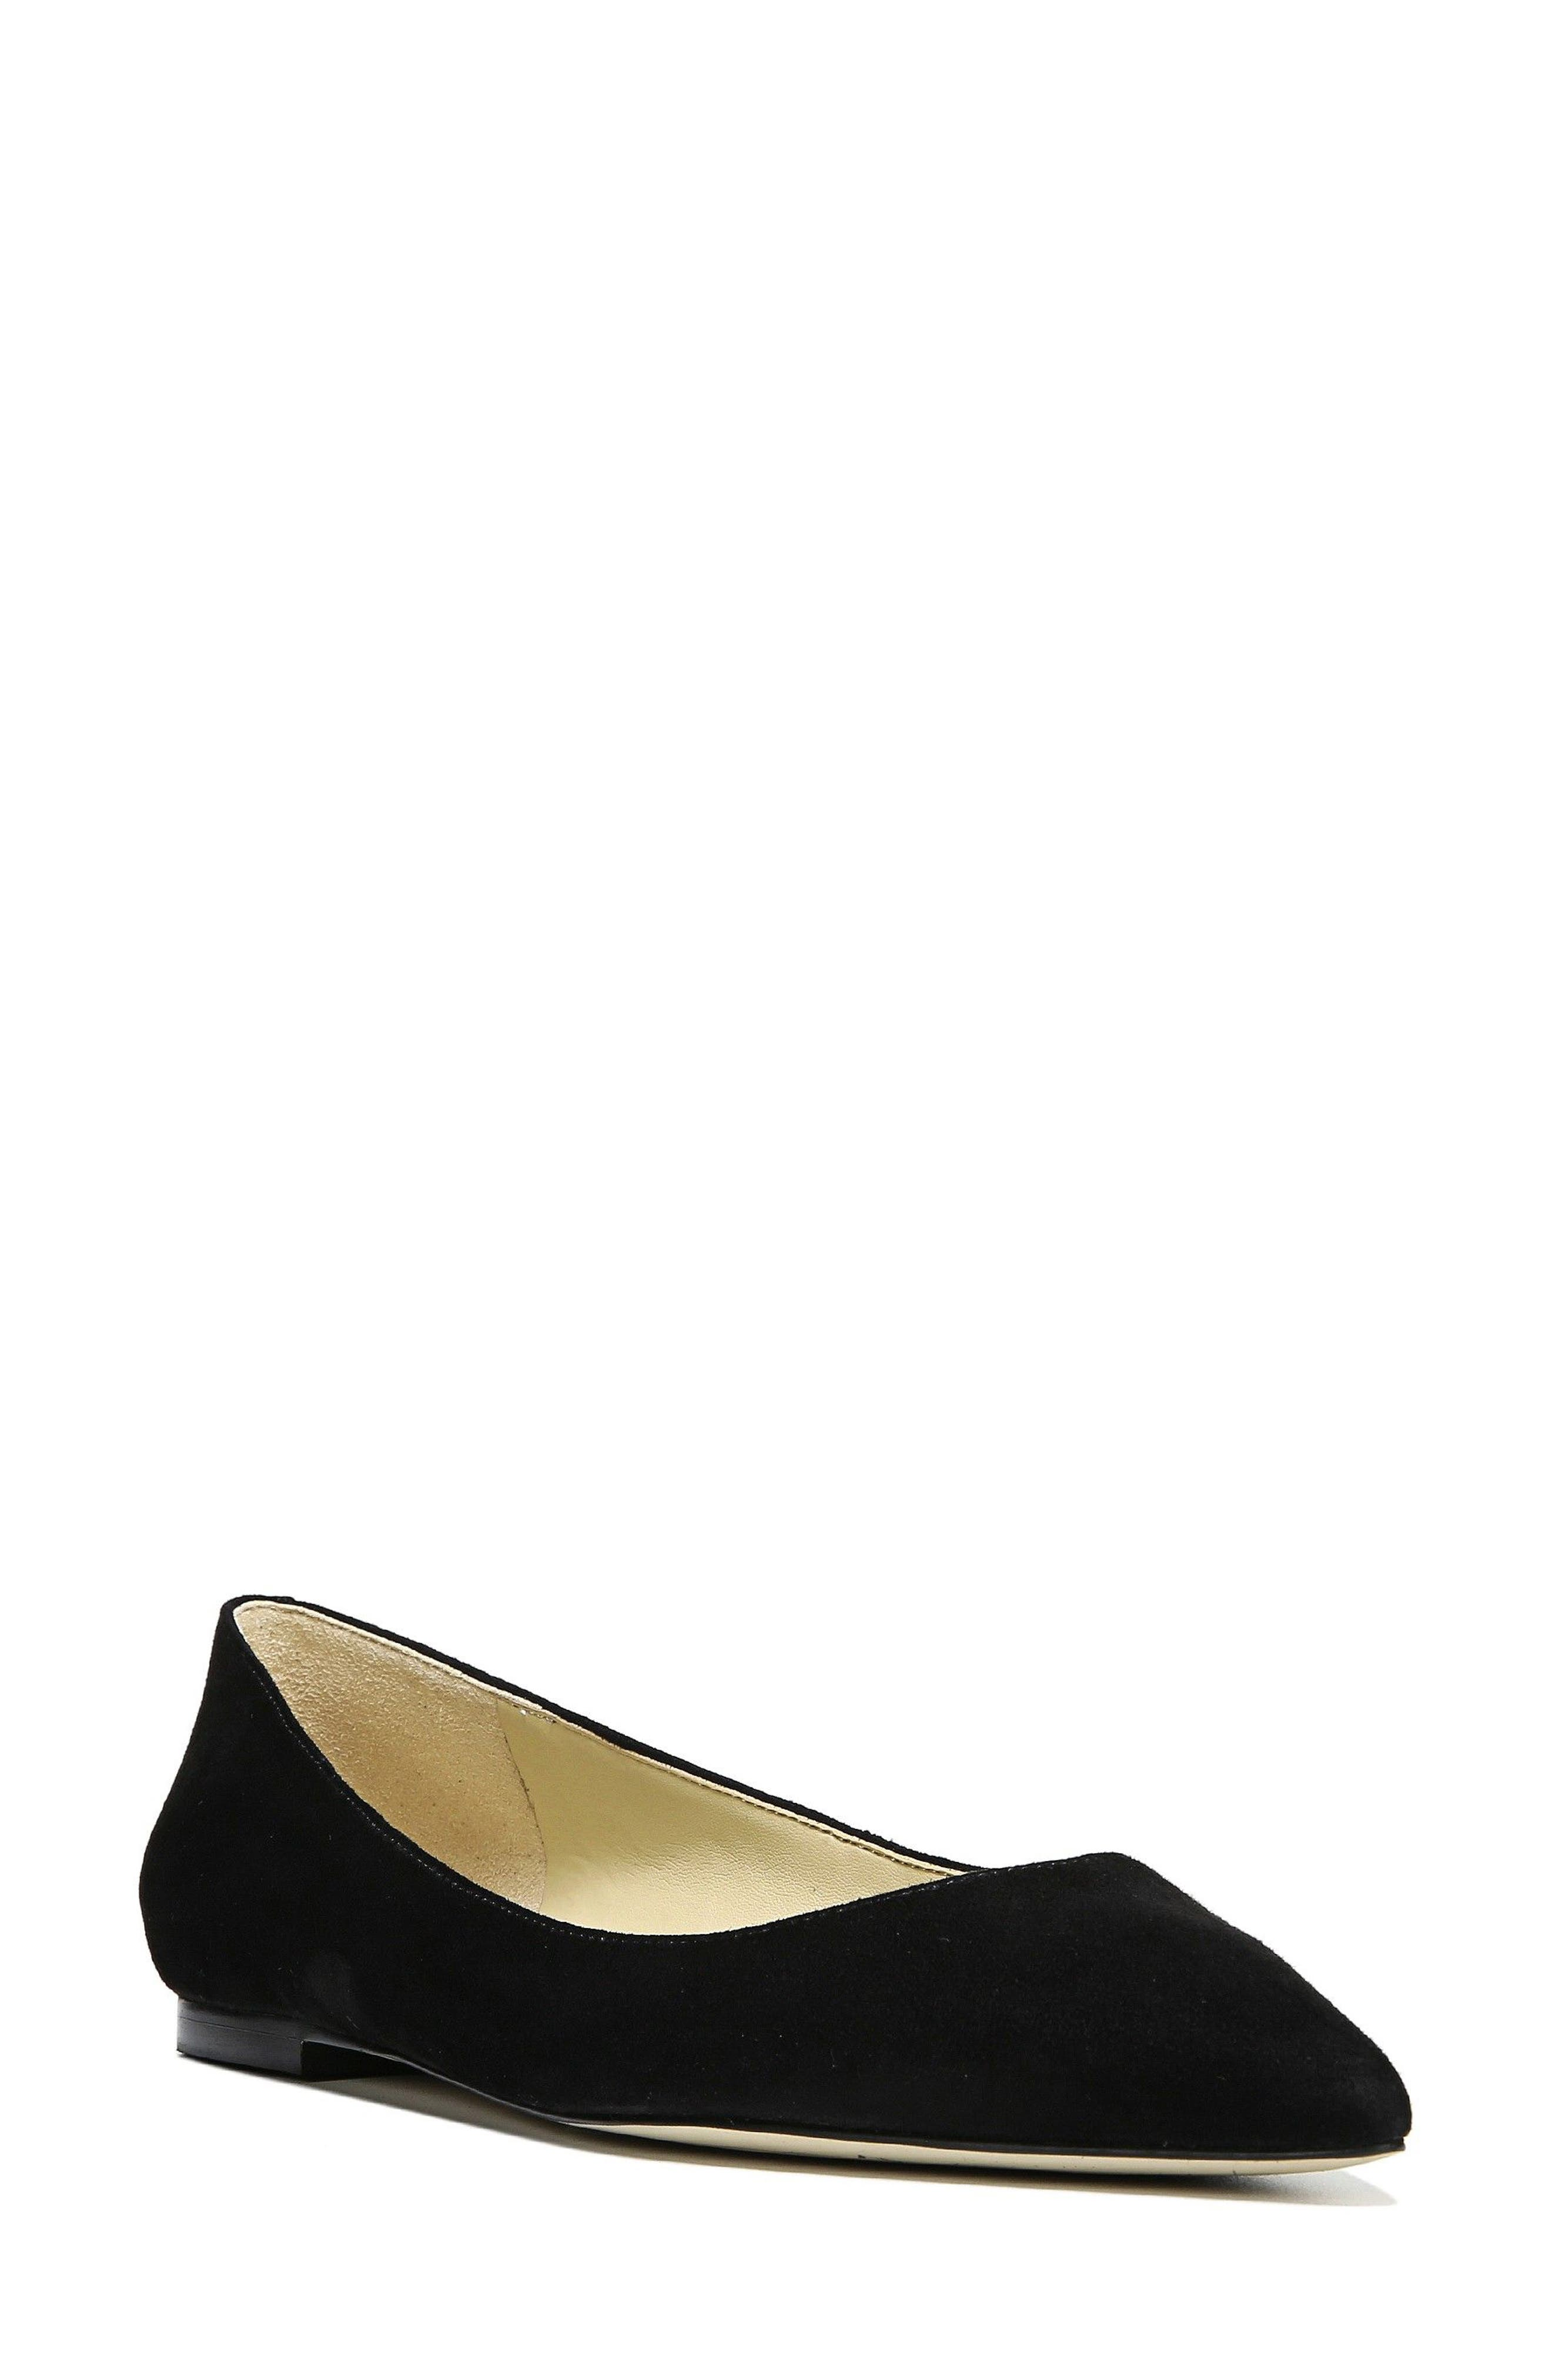 'Rae' Pointy Toe Ballet Flat,                         Main,                         color, 001